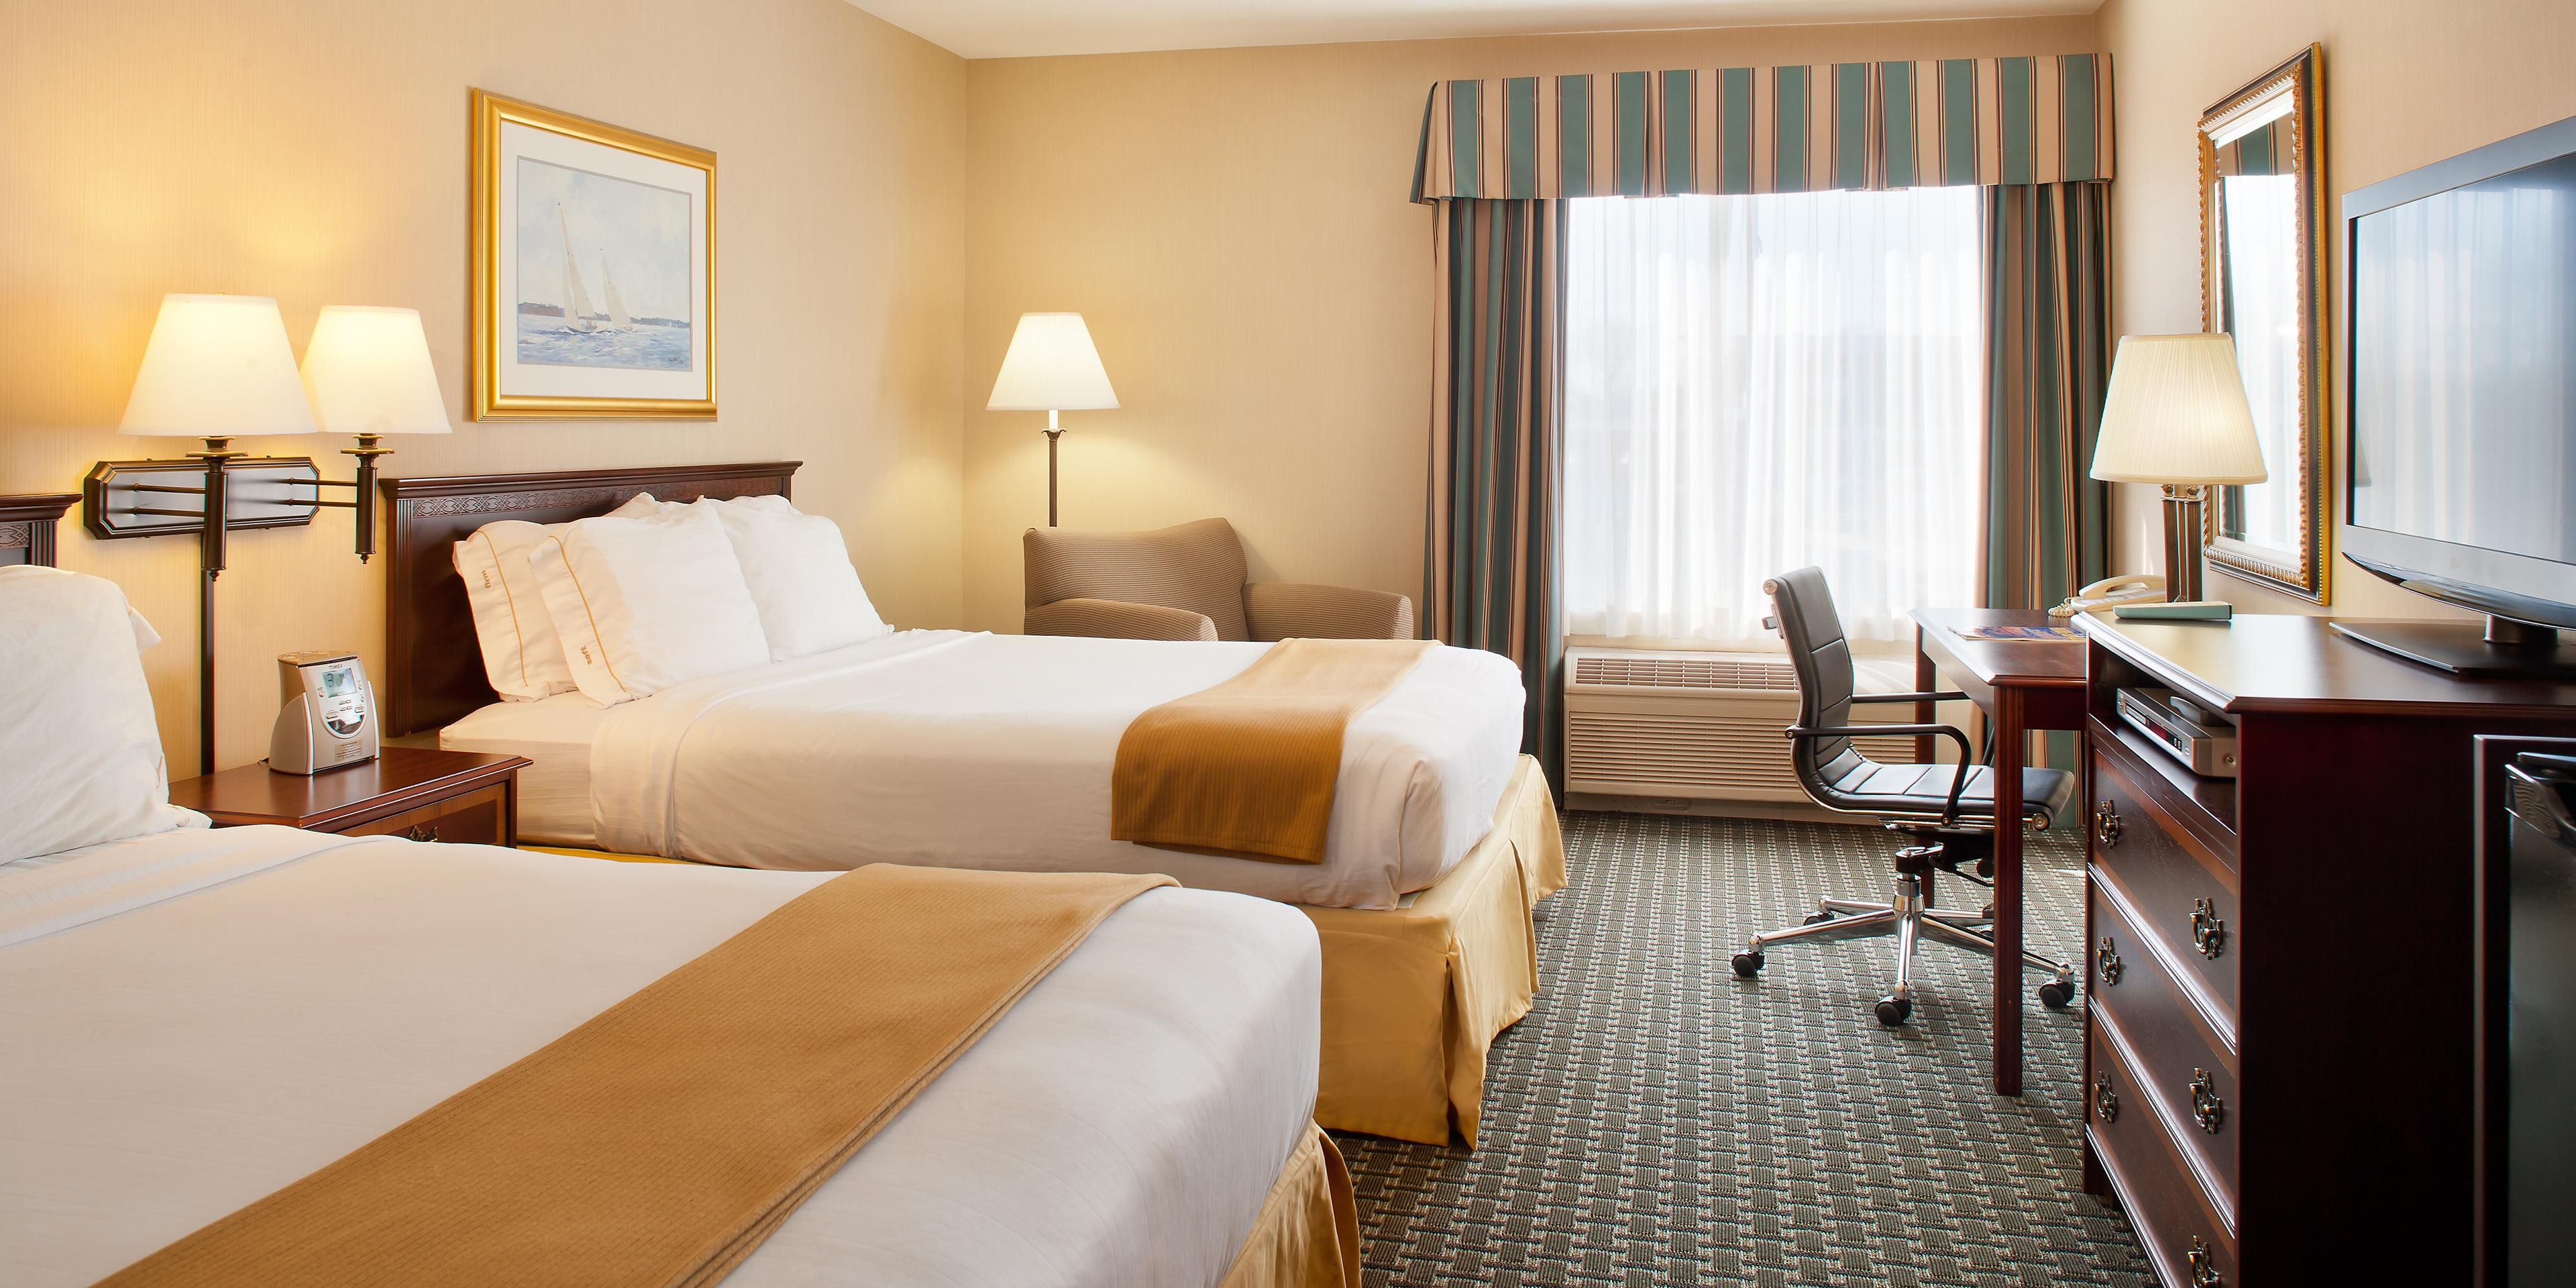 Holiday Inn Express Middletown 3473317949 2x1